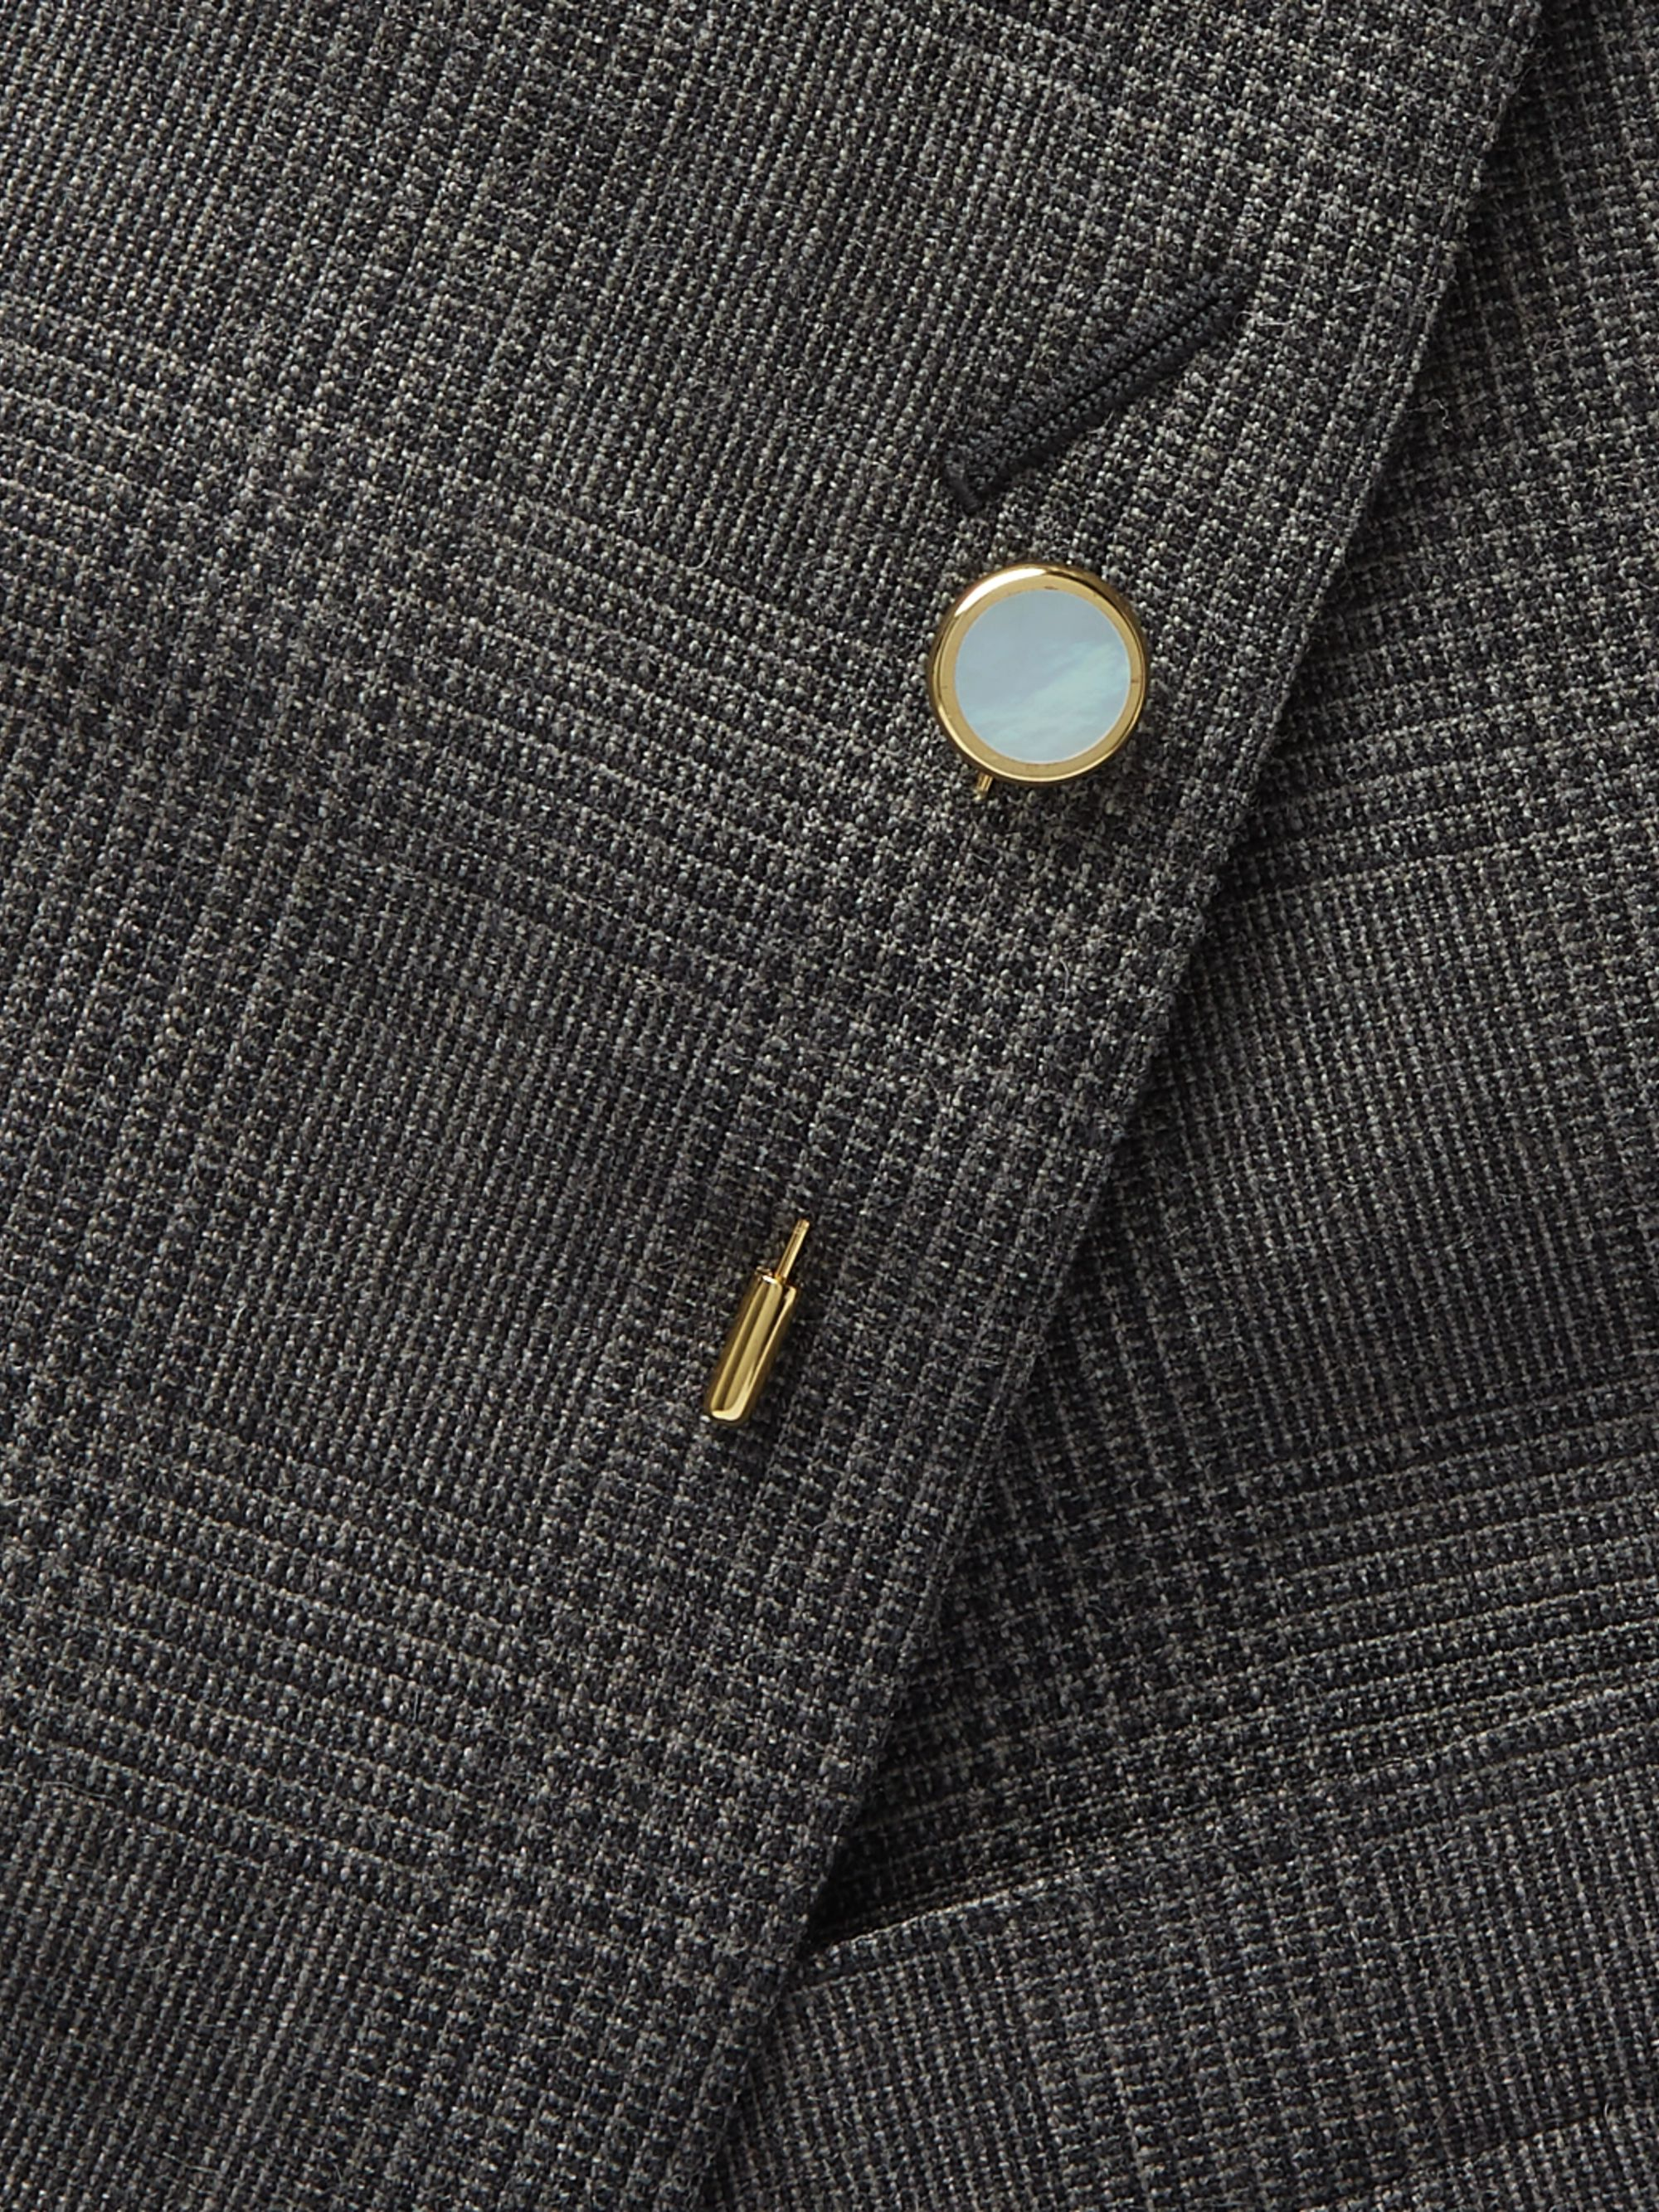 Kingsman + Deakin & Francis Gold-Plated Mother-of-Pearl Tie Pin